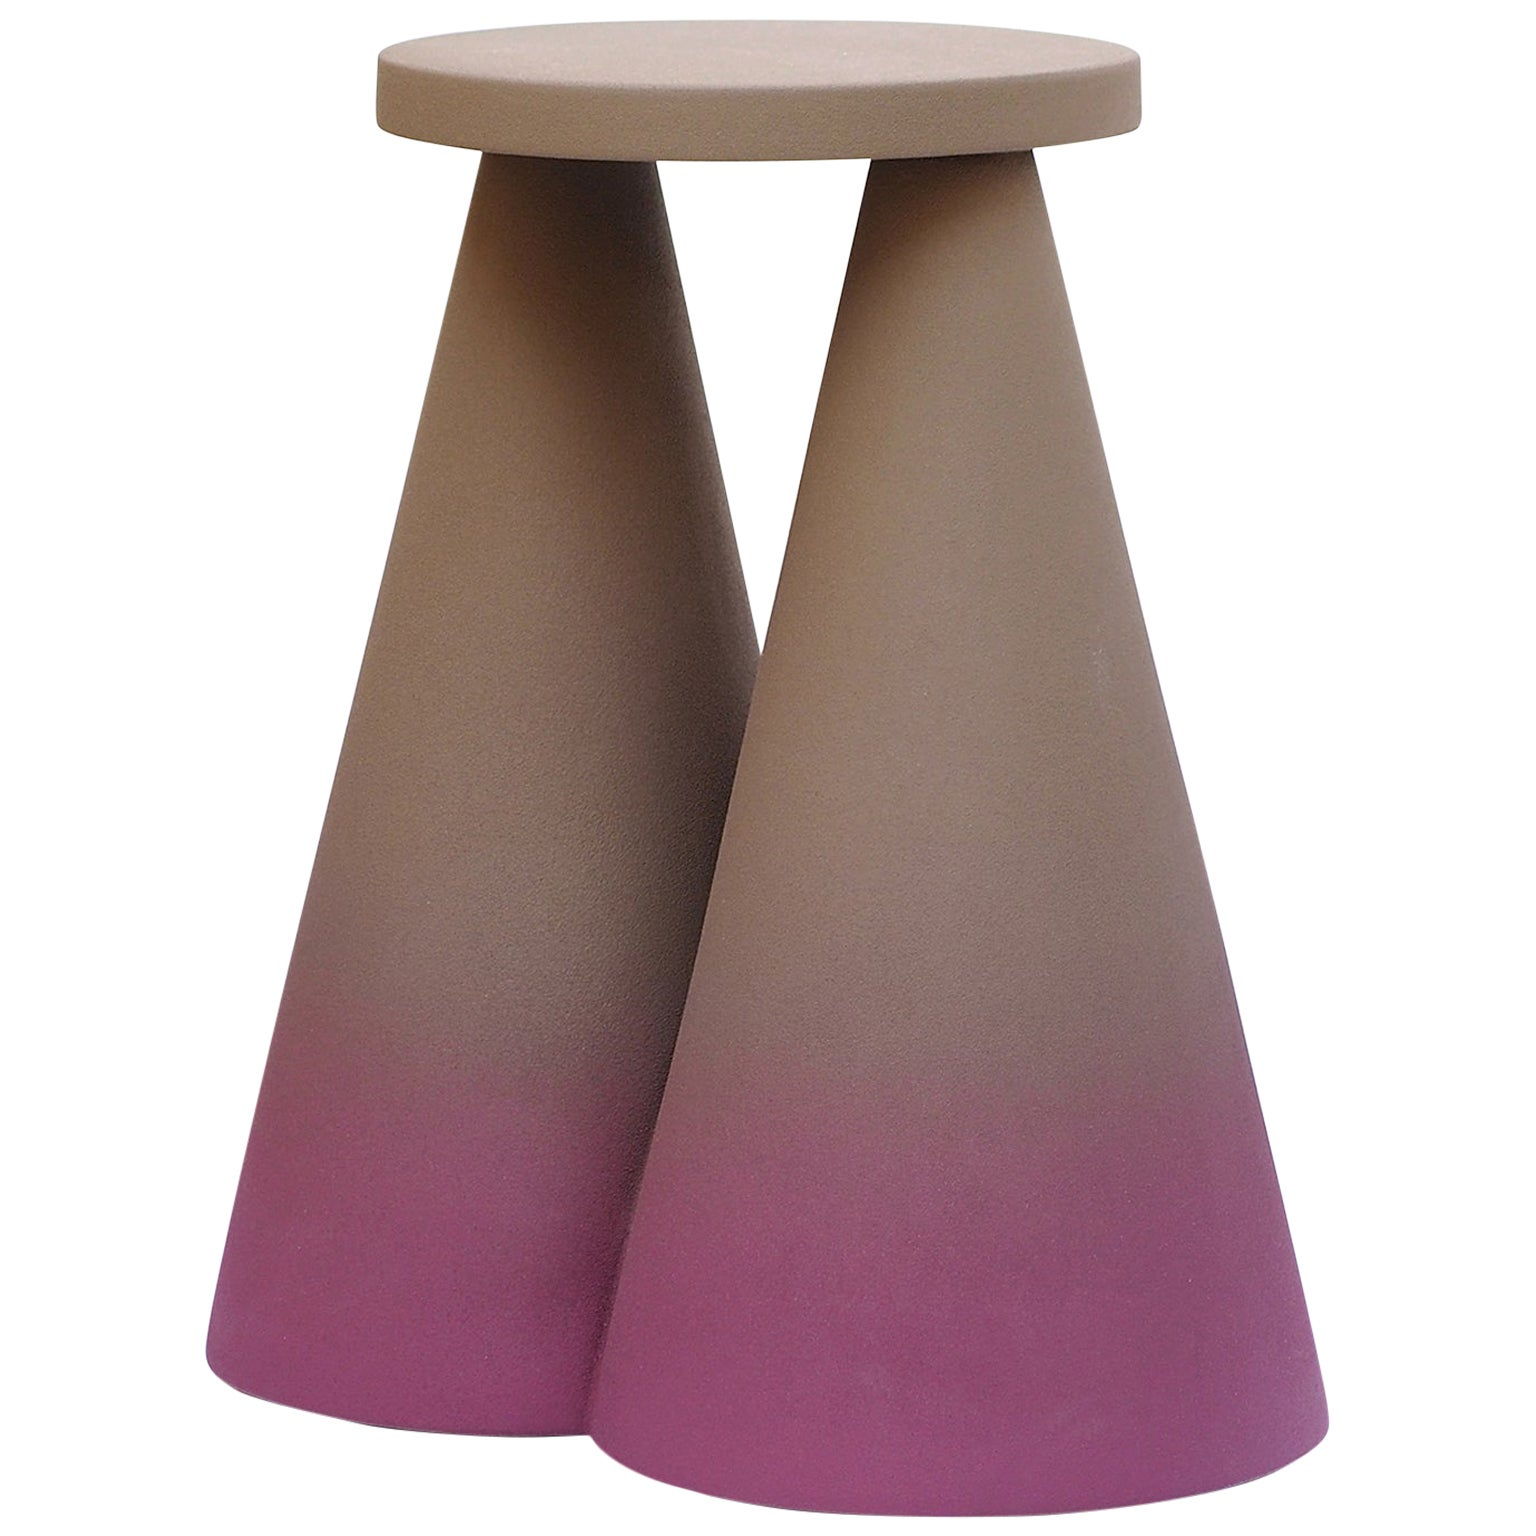 Isola/ Ceramic Conic Side Table/ Purple, Designed by Cara/Davide for Portego